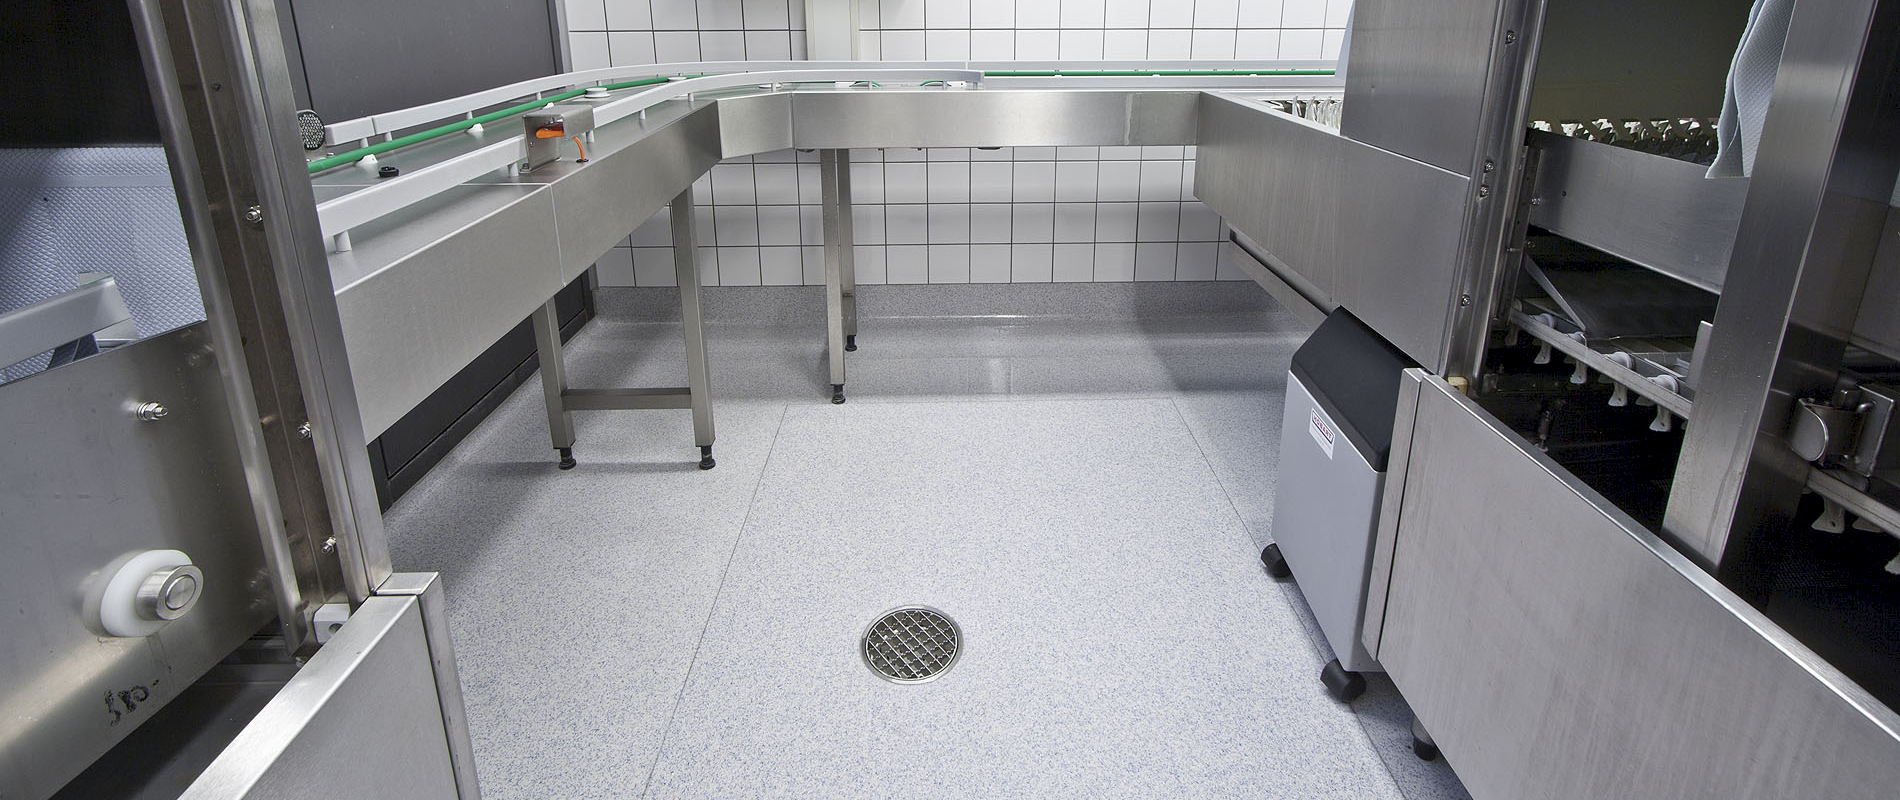 barit kitchen floor for the Sparkasse Ludwigsburg